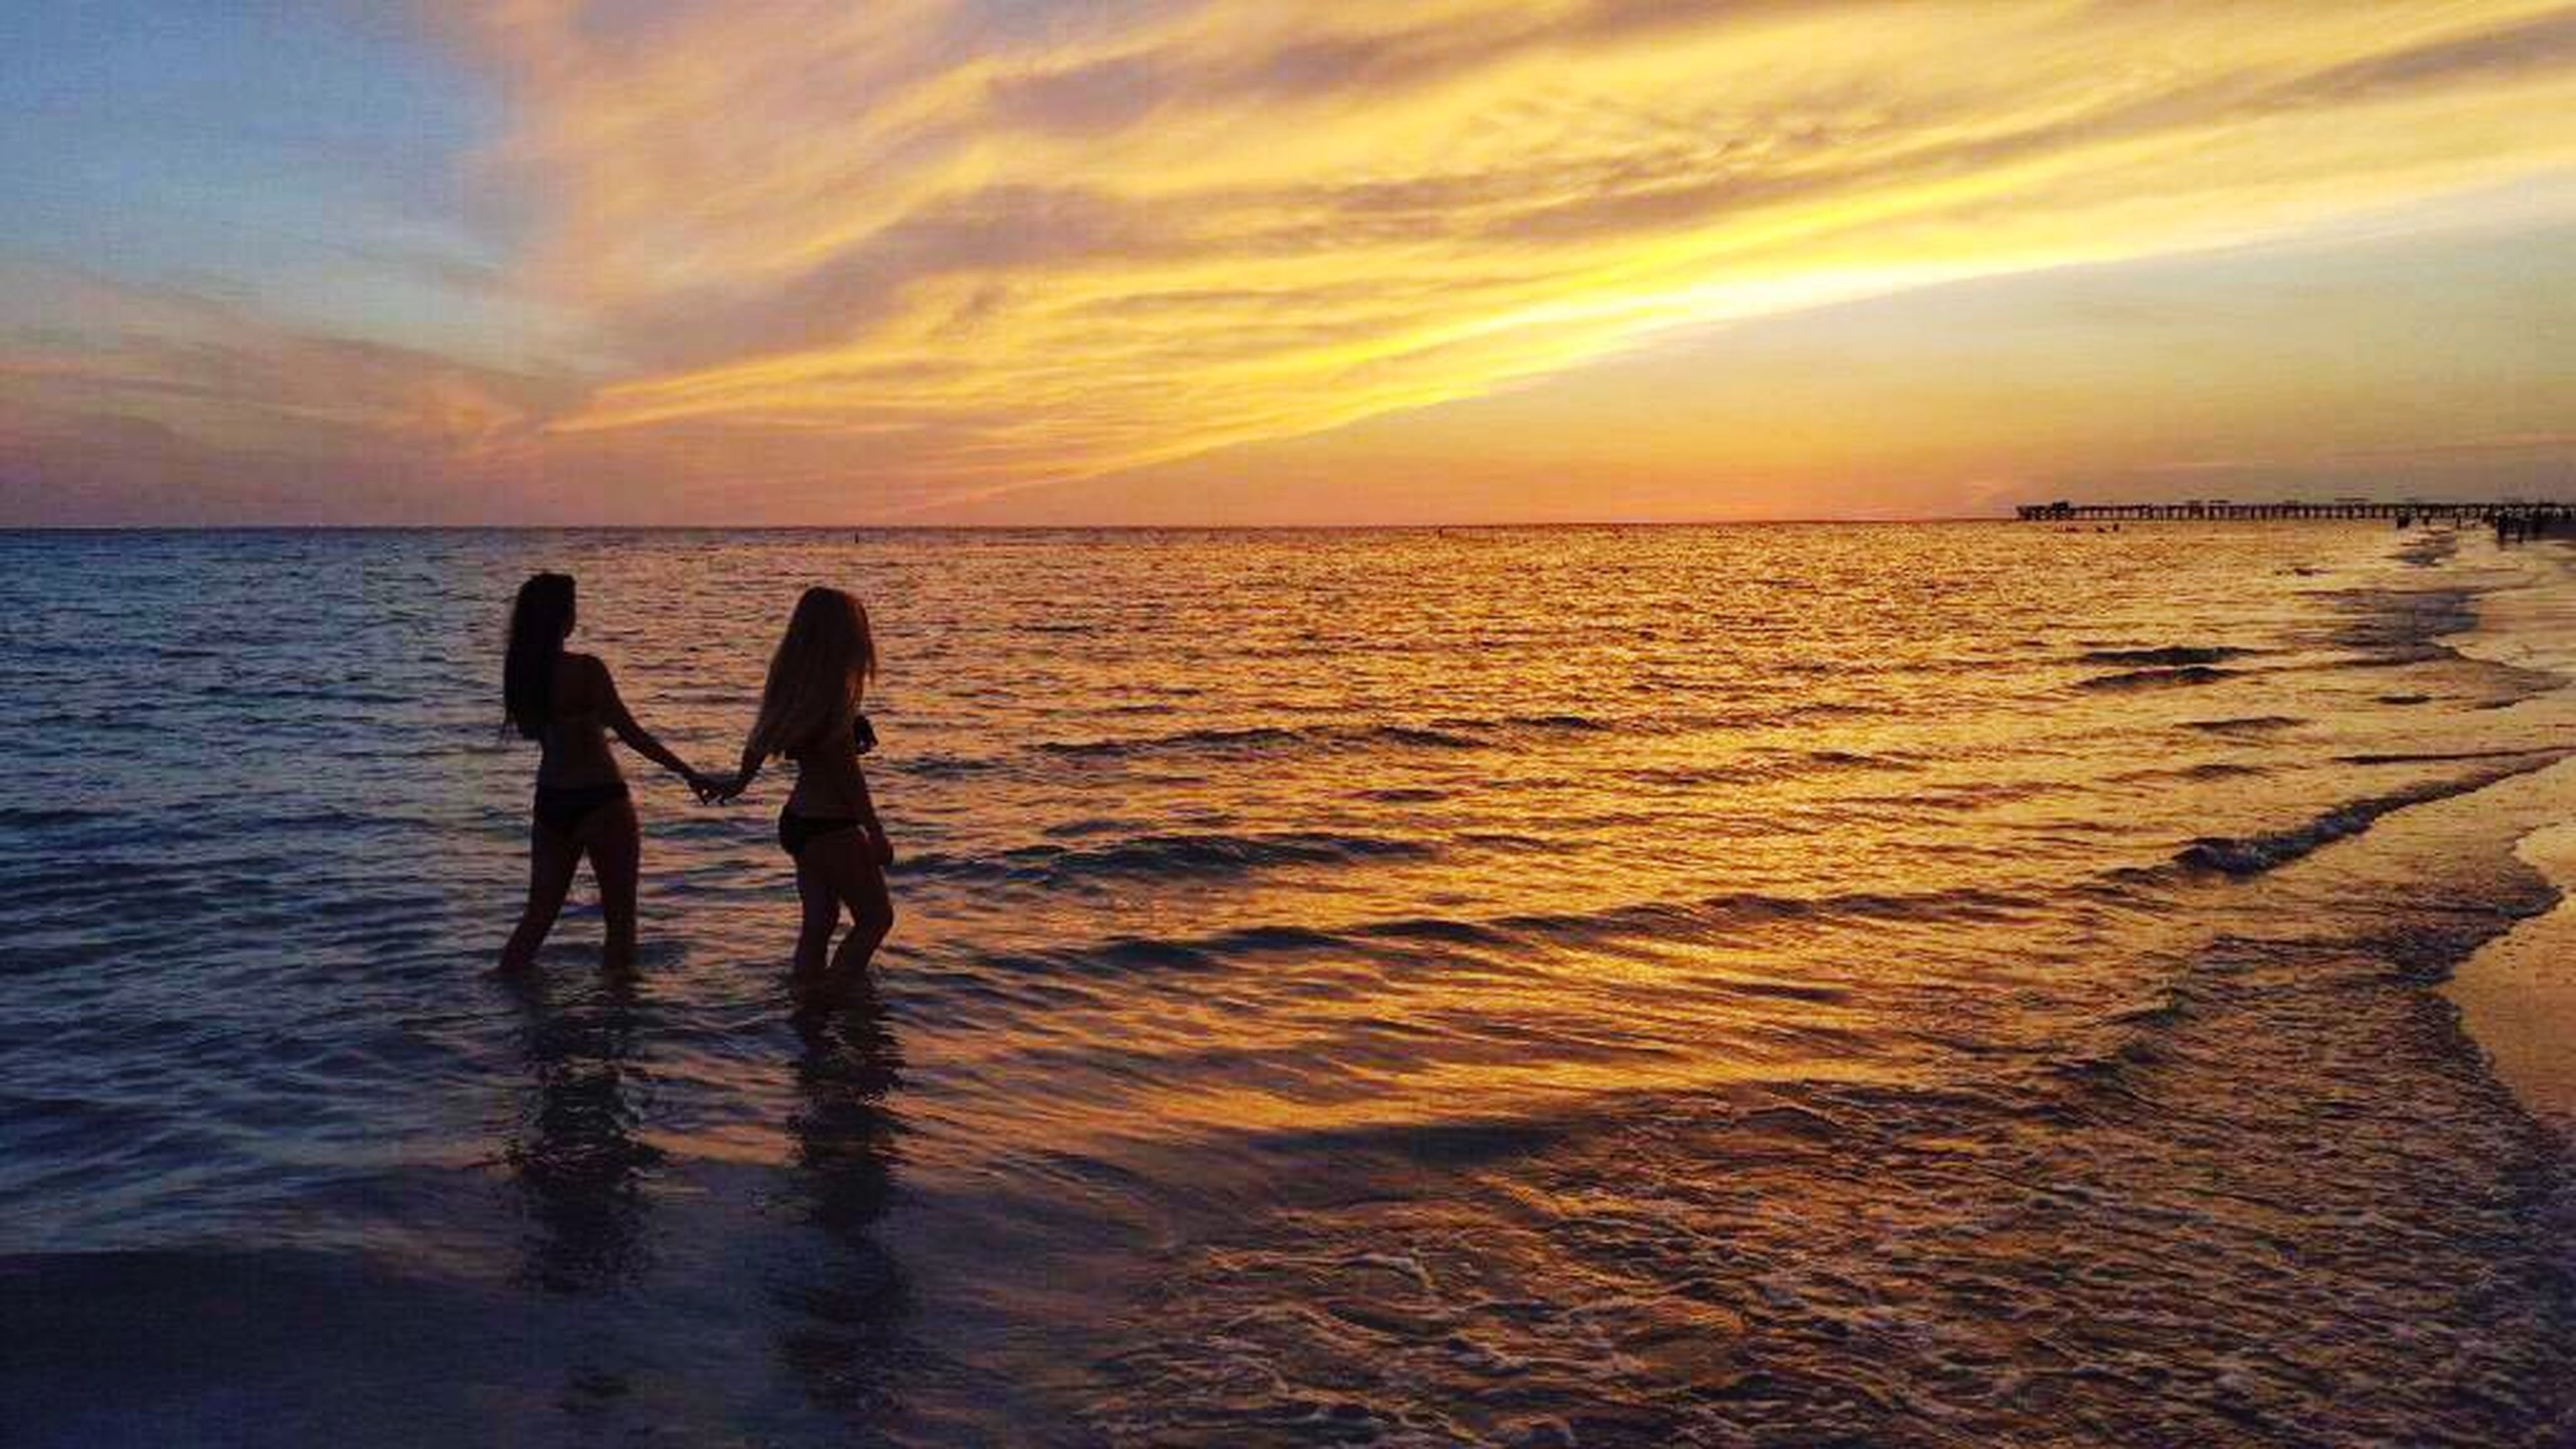 sea, water, sunset, horizon over water, beach, sky, silhouette, shore, leisure activity, lifestyles, scenics, beauty in nature, men, vacations, cloud - sky, reflection, tranquil scene, orange color, person